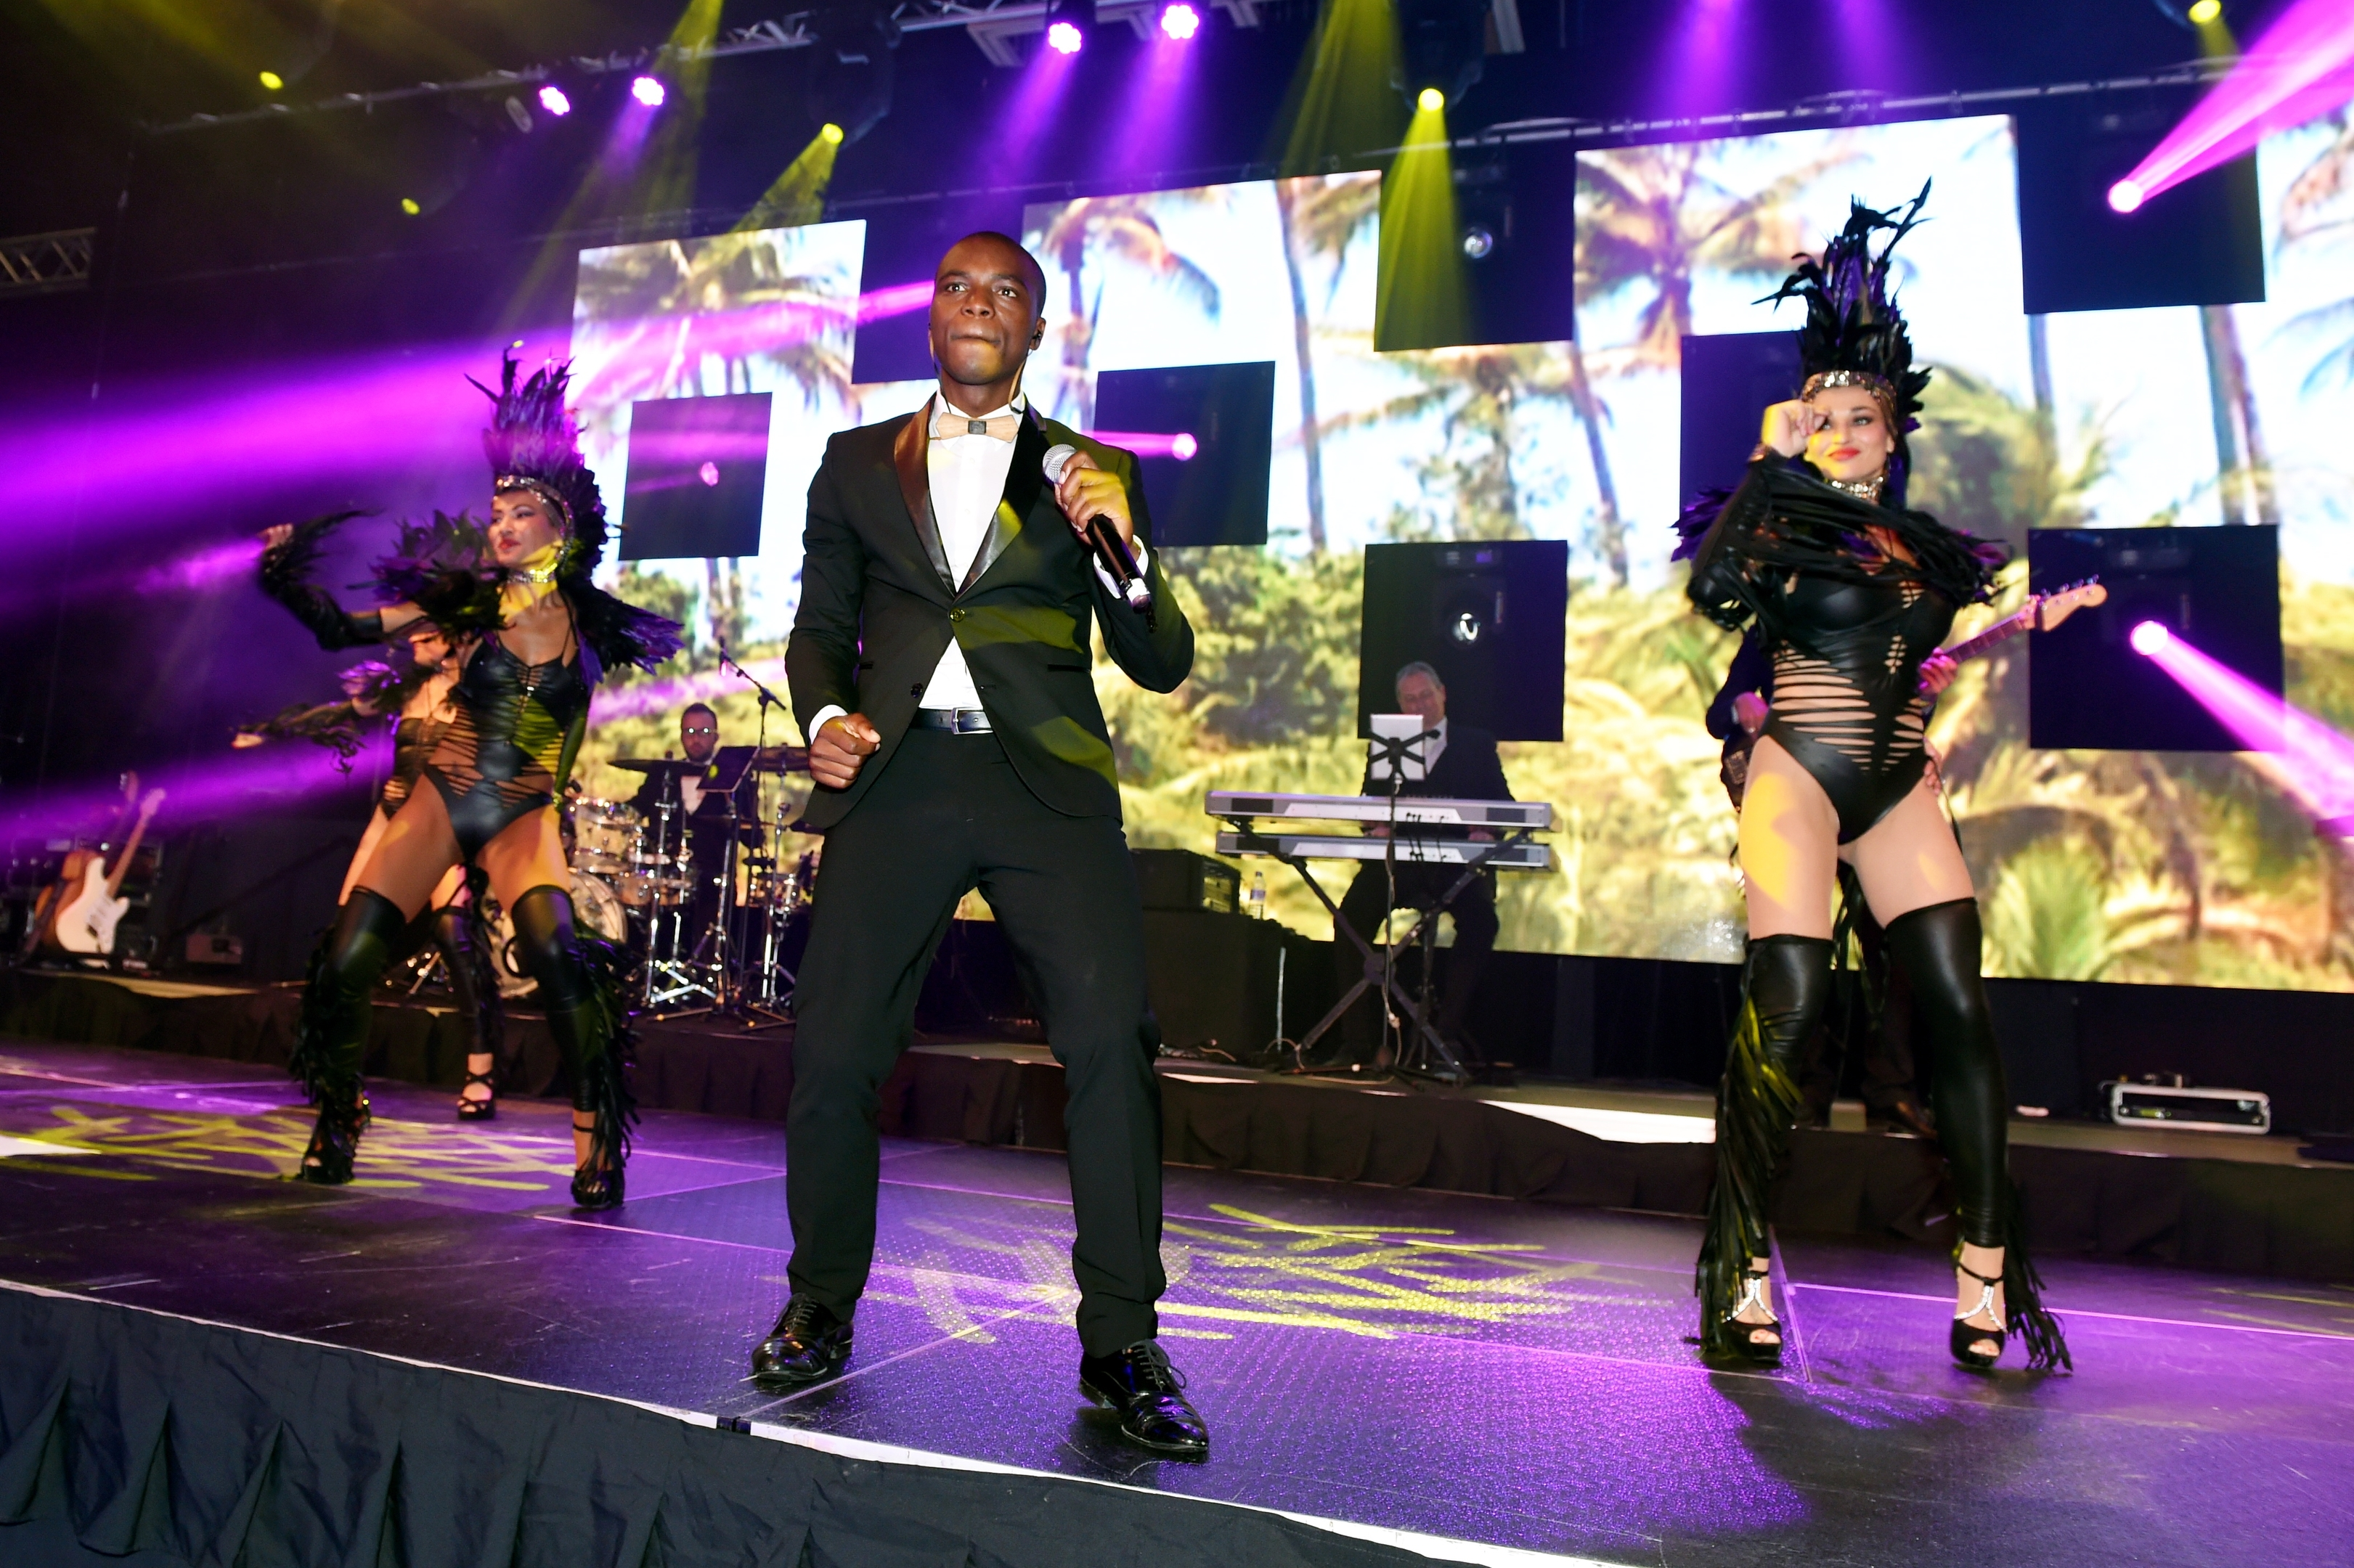 The Swan band performing at the Energy Ball 2015 Picture by KEVIN EMSLIE